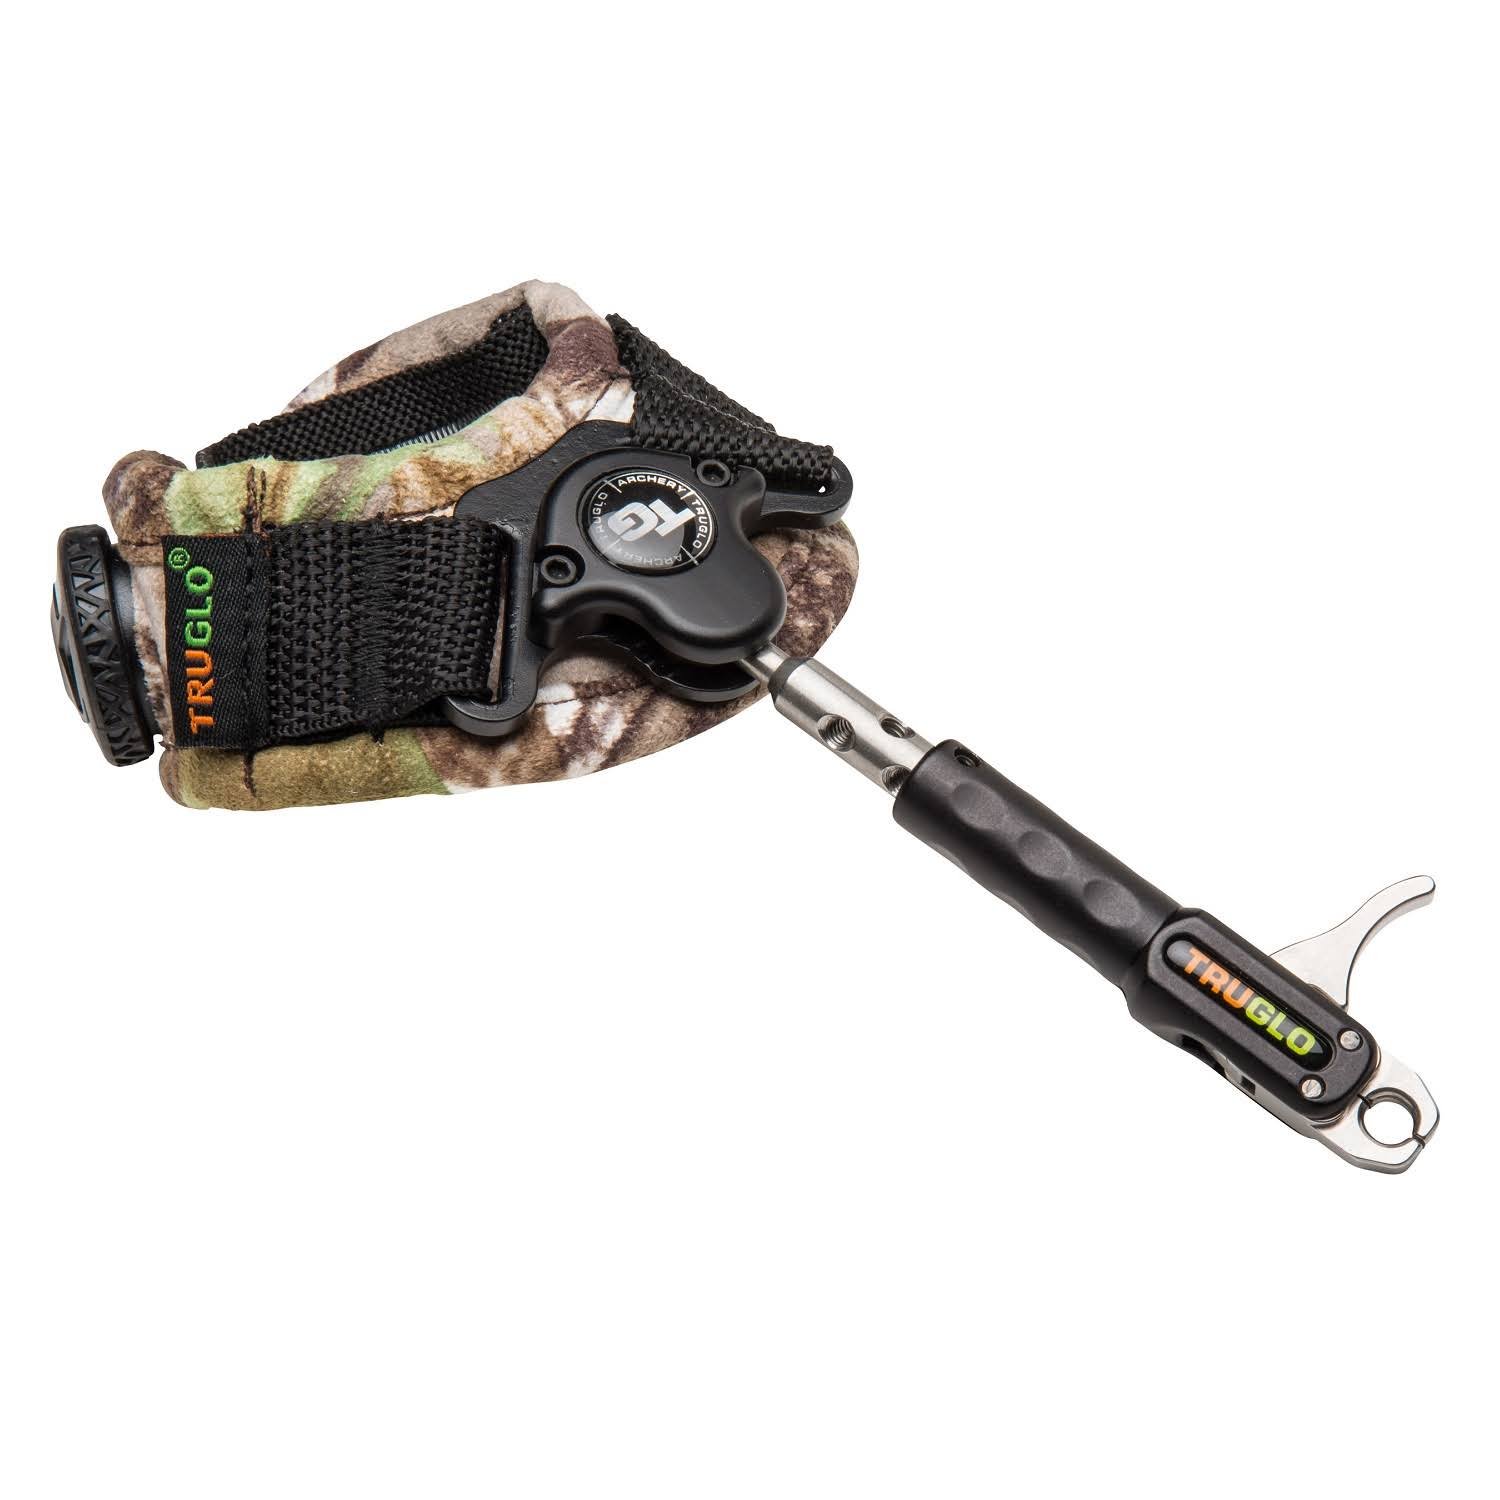 TruGlo Nitrus Archery Release with BOA Closure System - Camo